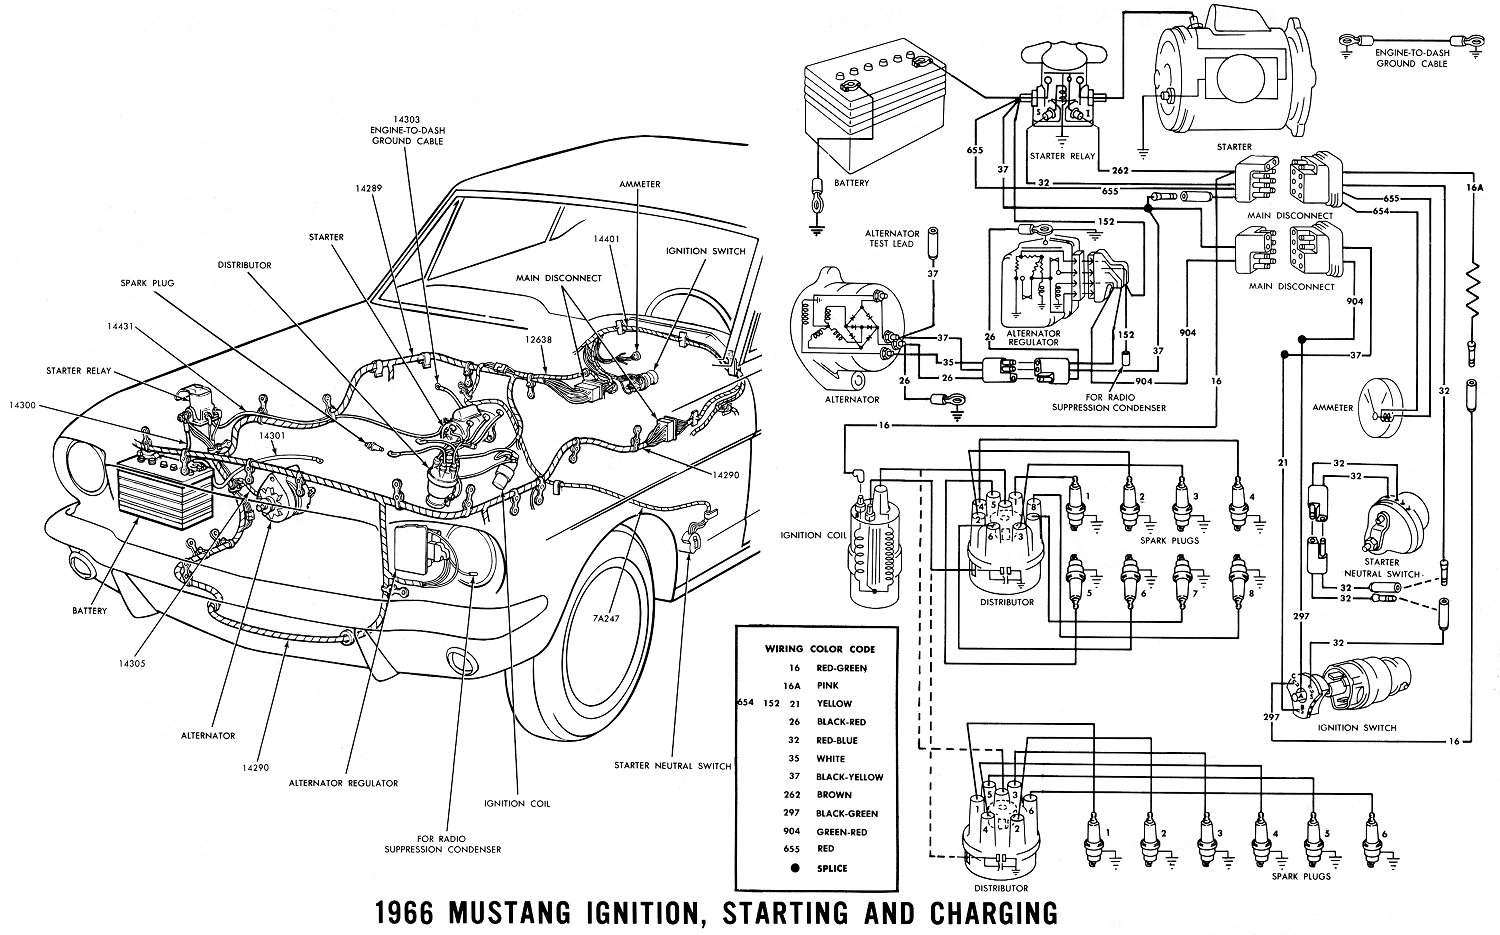 66ignit 1966 mustang wiring diagrams average joe restoration ignition wiring diagram at aneh.co